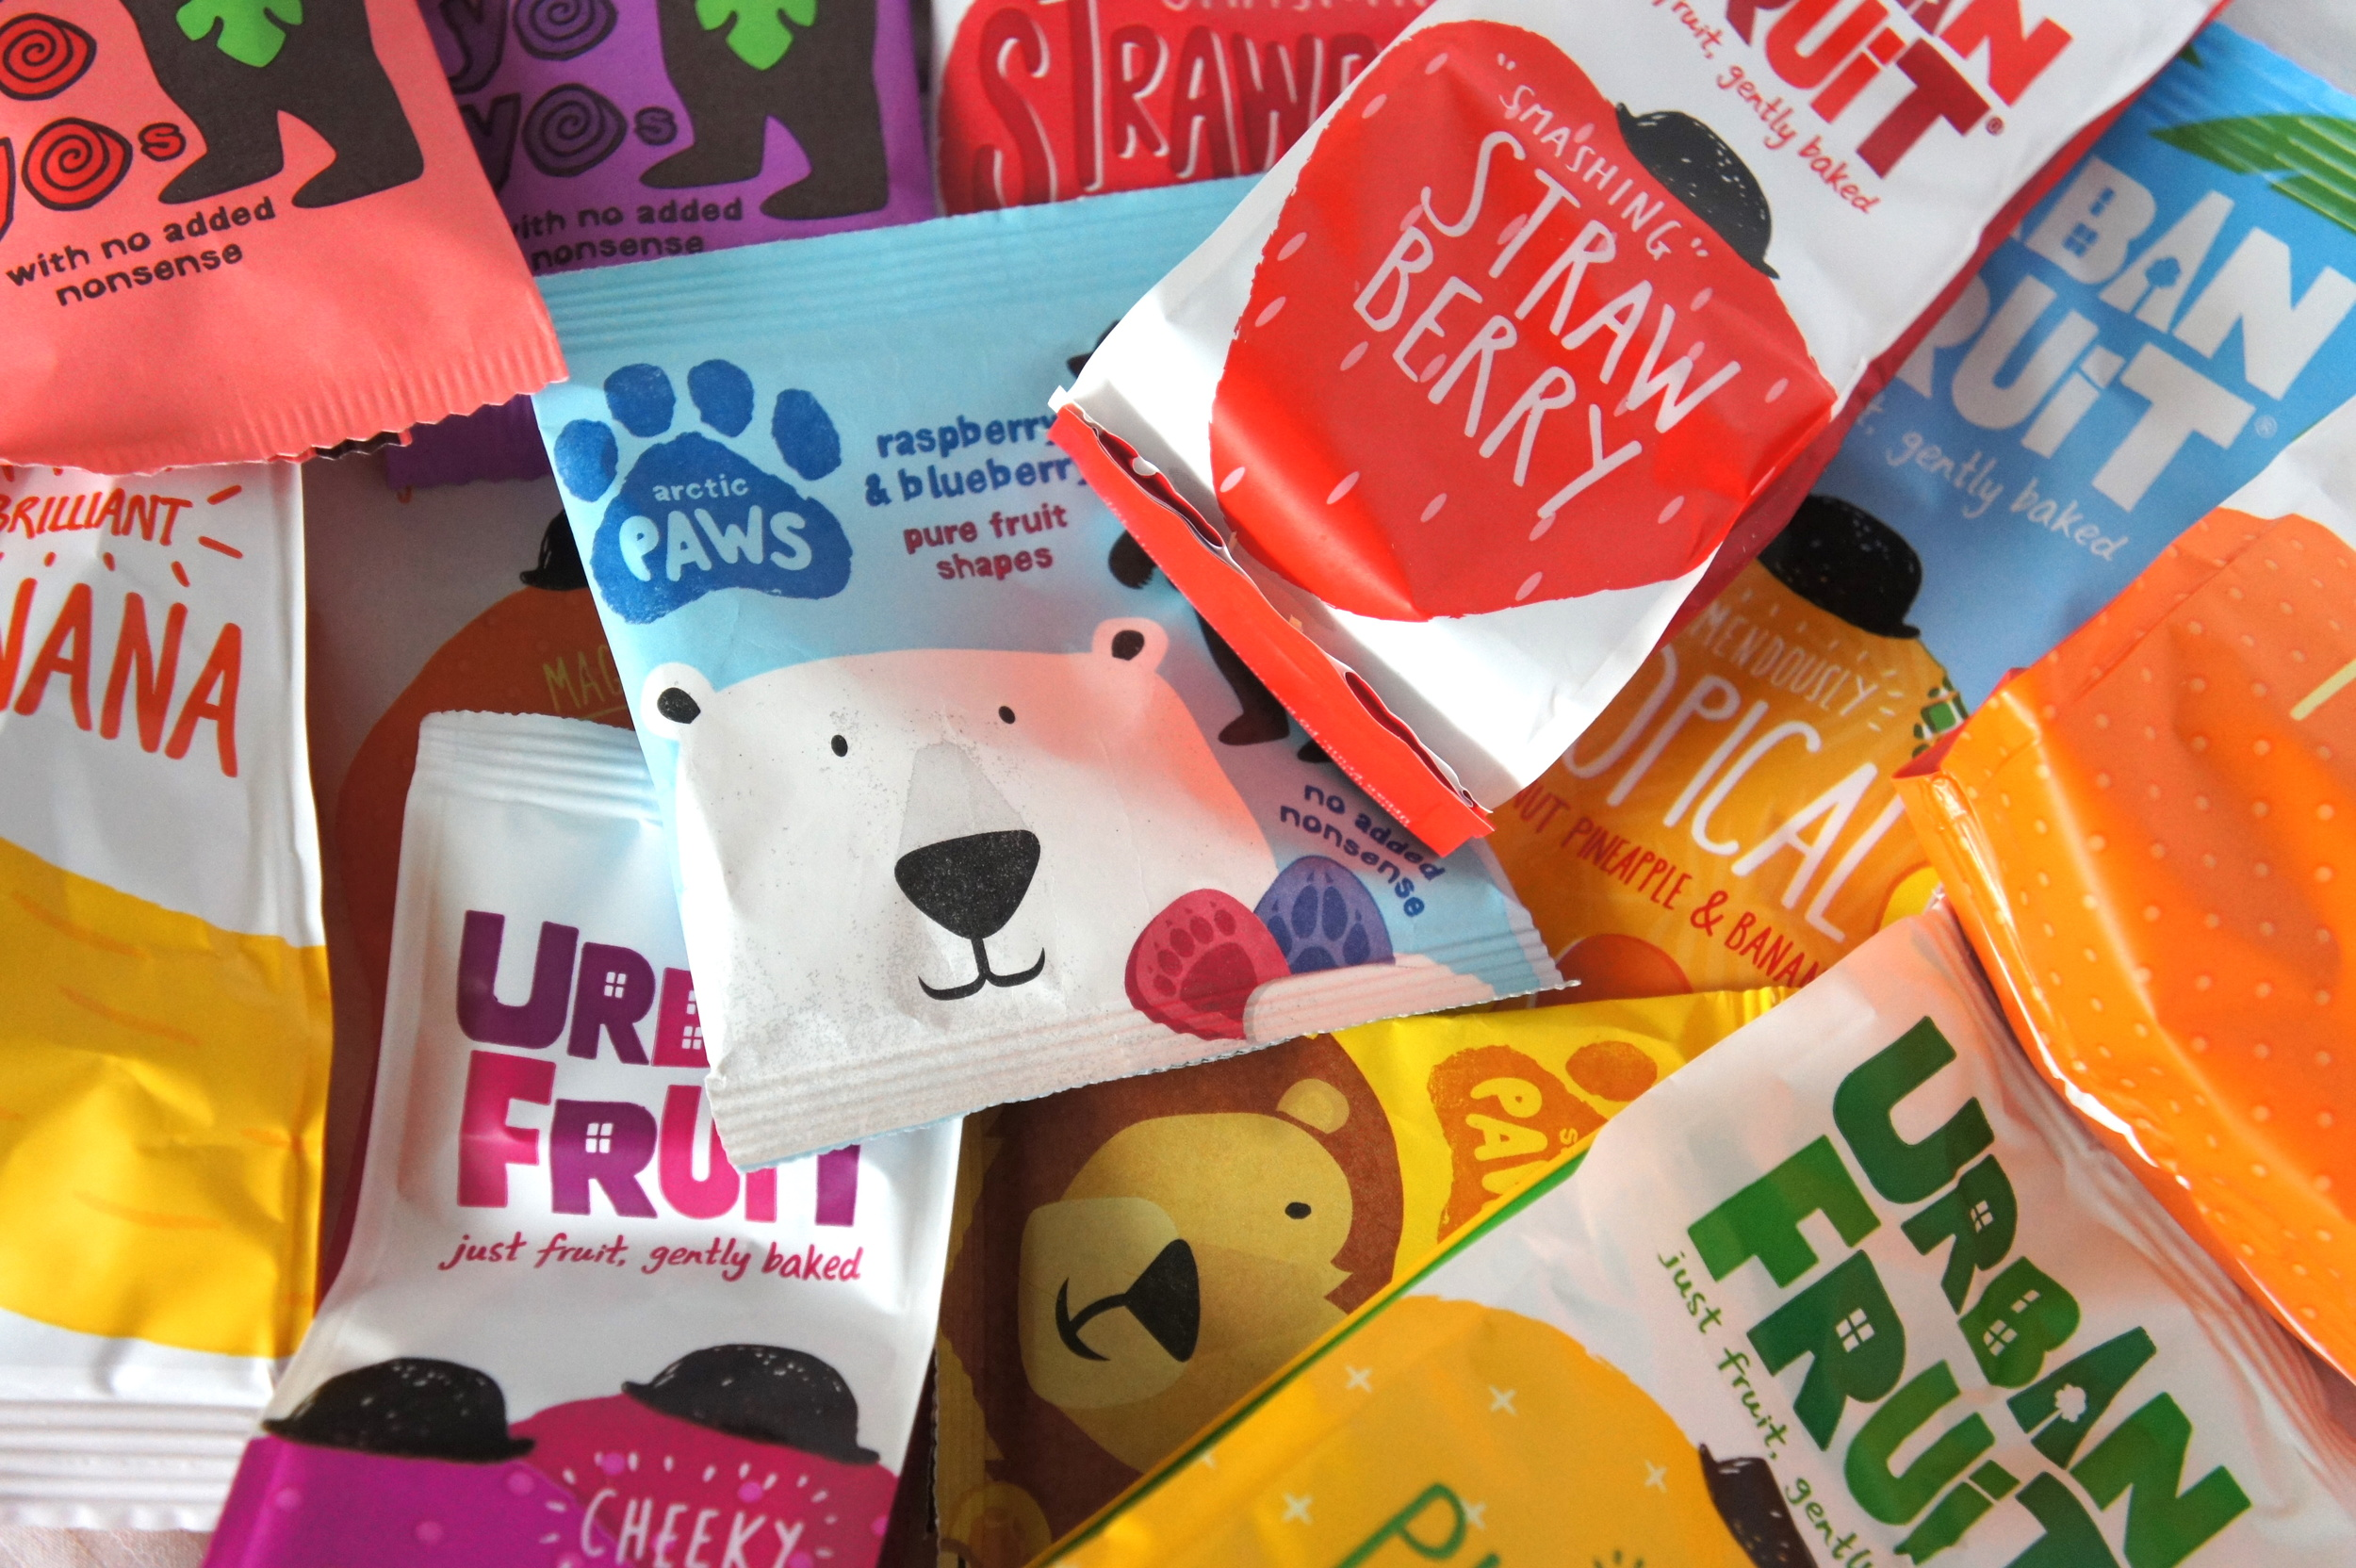 Fruit-Snacks-Healthy-Urban-Fruit-BEAR